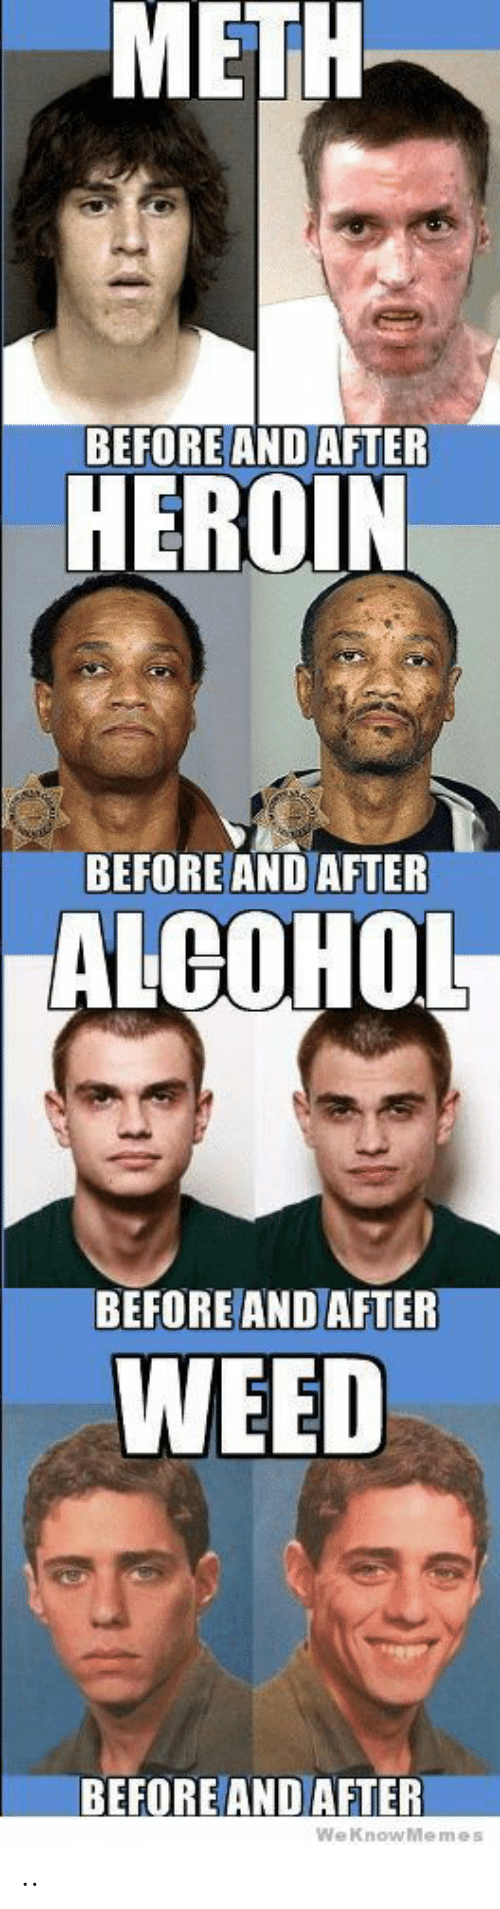 before and after: METH  BEFORE AND AFTER  HEROIN  BEFORE AND AFTER  ALCOHOL  BEFORE AND AFTER  WEED  BEFORE AND AFTER  WeKnowMemes  0 ..